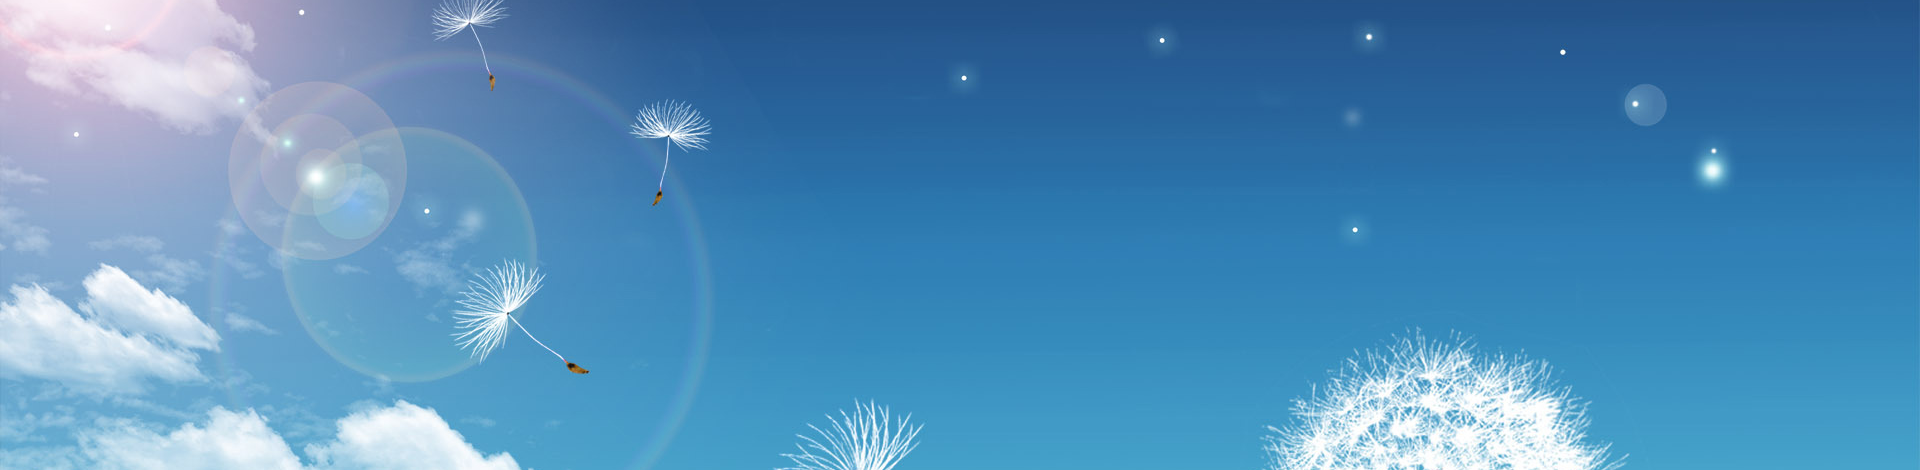 dandelion banner Beyond Good Health